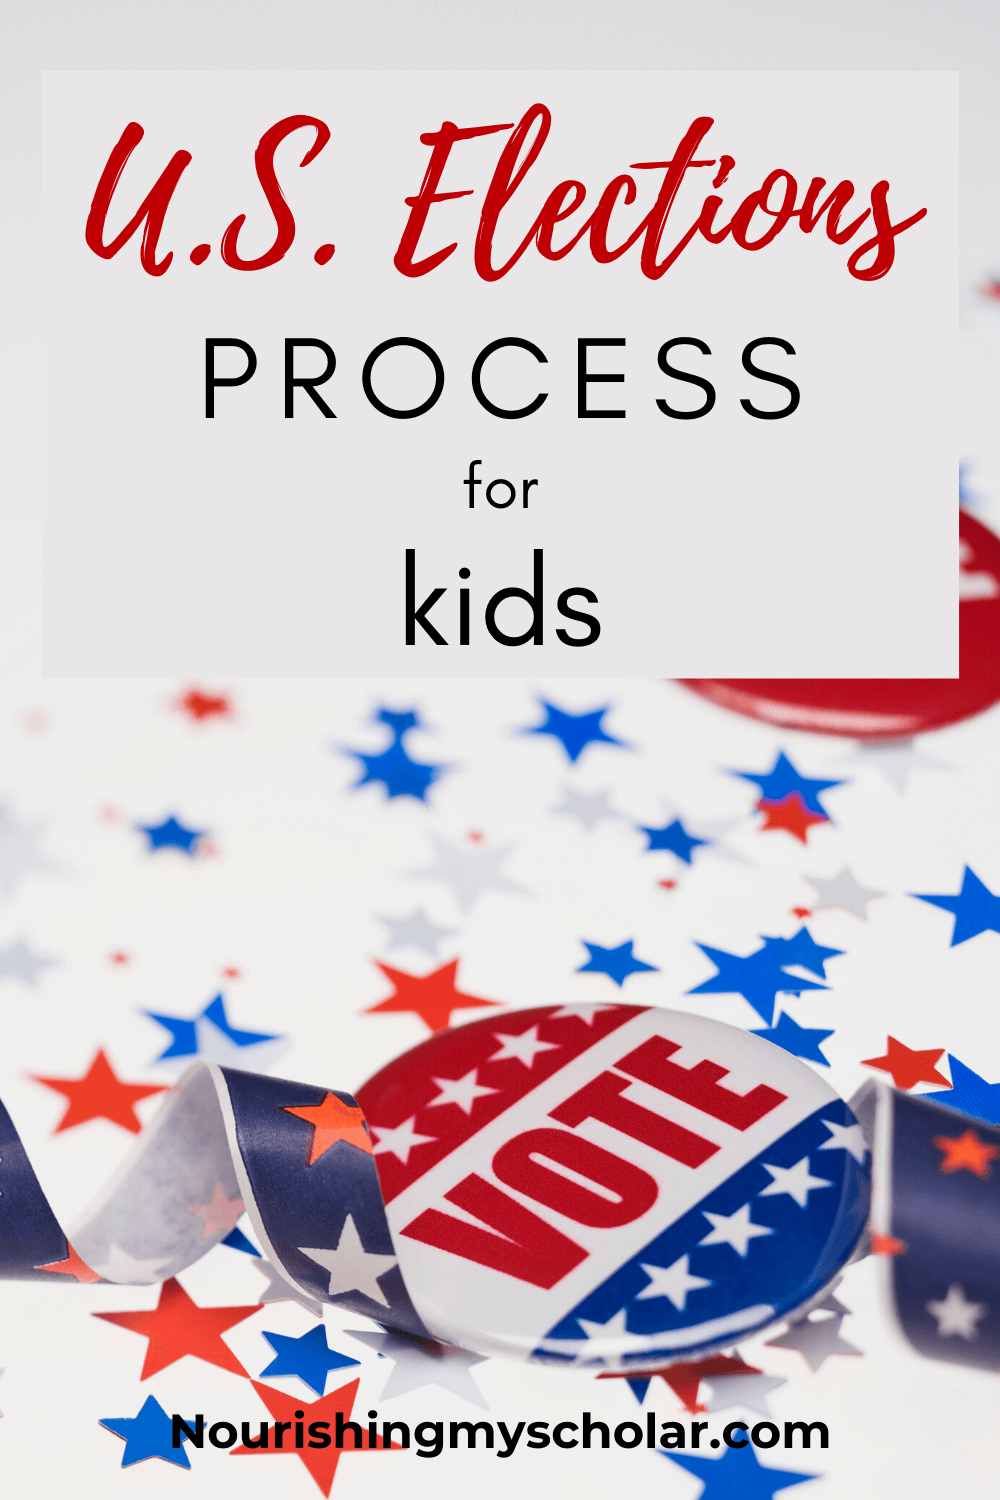 U.S. Elections Process for Kids: Are you looking to teach your kid's about the U.S. elections process this year? Voting is one of the most important things we can do as United States citizens. But do you wonder how to explain what an election is and how it works to your child? What about how important elections are for our country? #election #voting #electionprocess #electionbooks #electionbooksforkids #electionlappak #electionlapbook #electionsforkids #unitedstateselectionprocess #uselectionslapbook